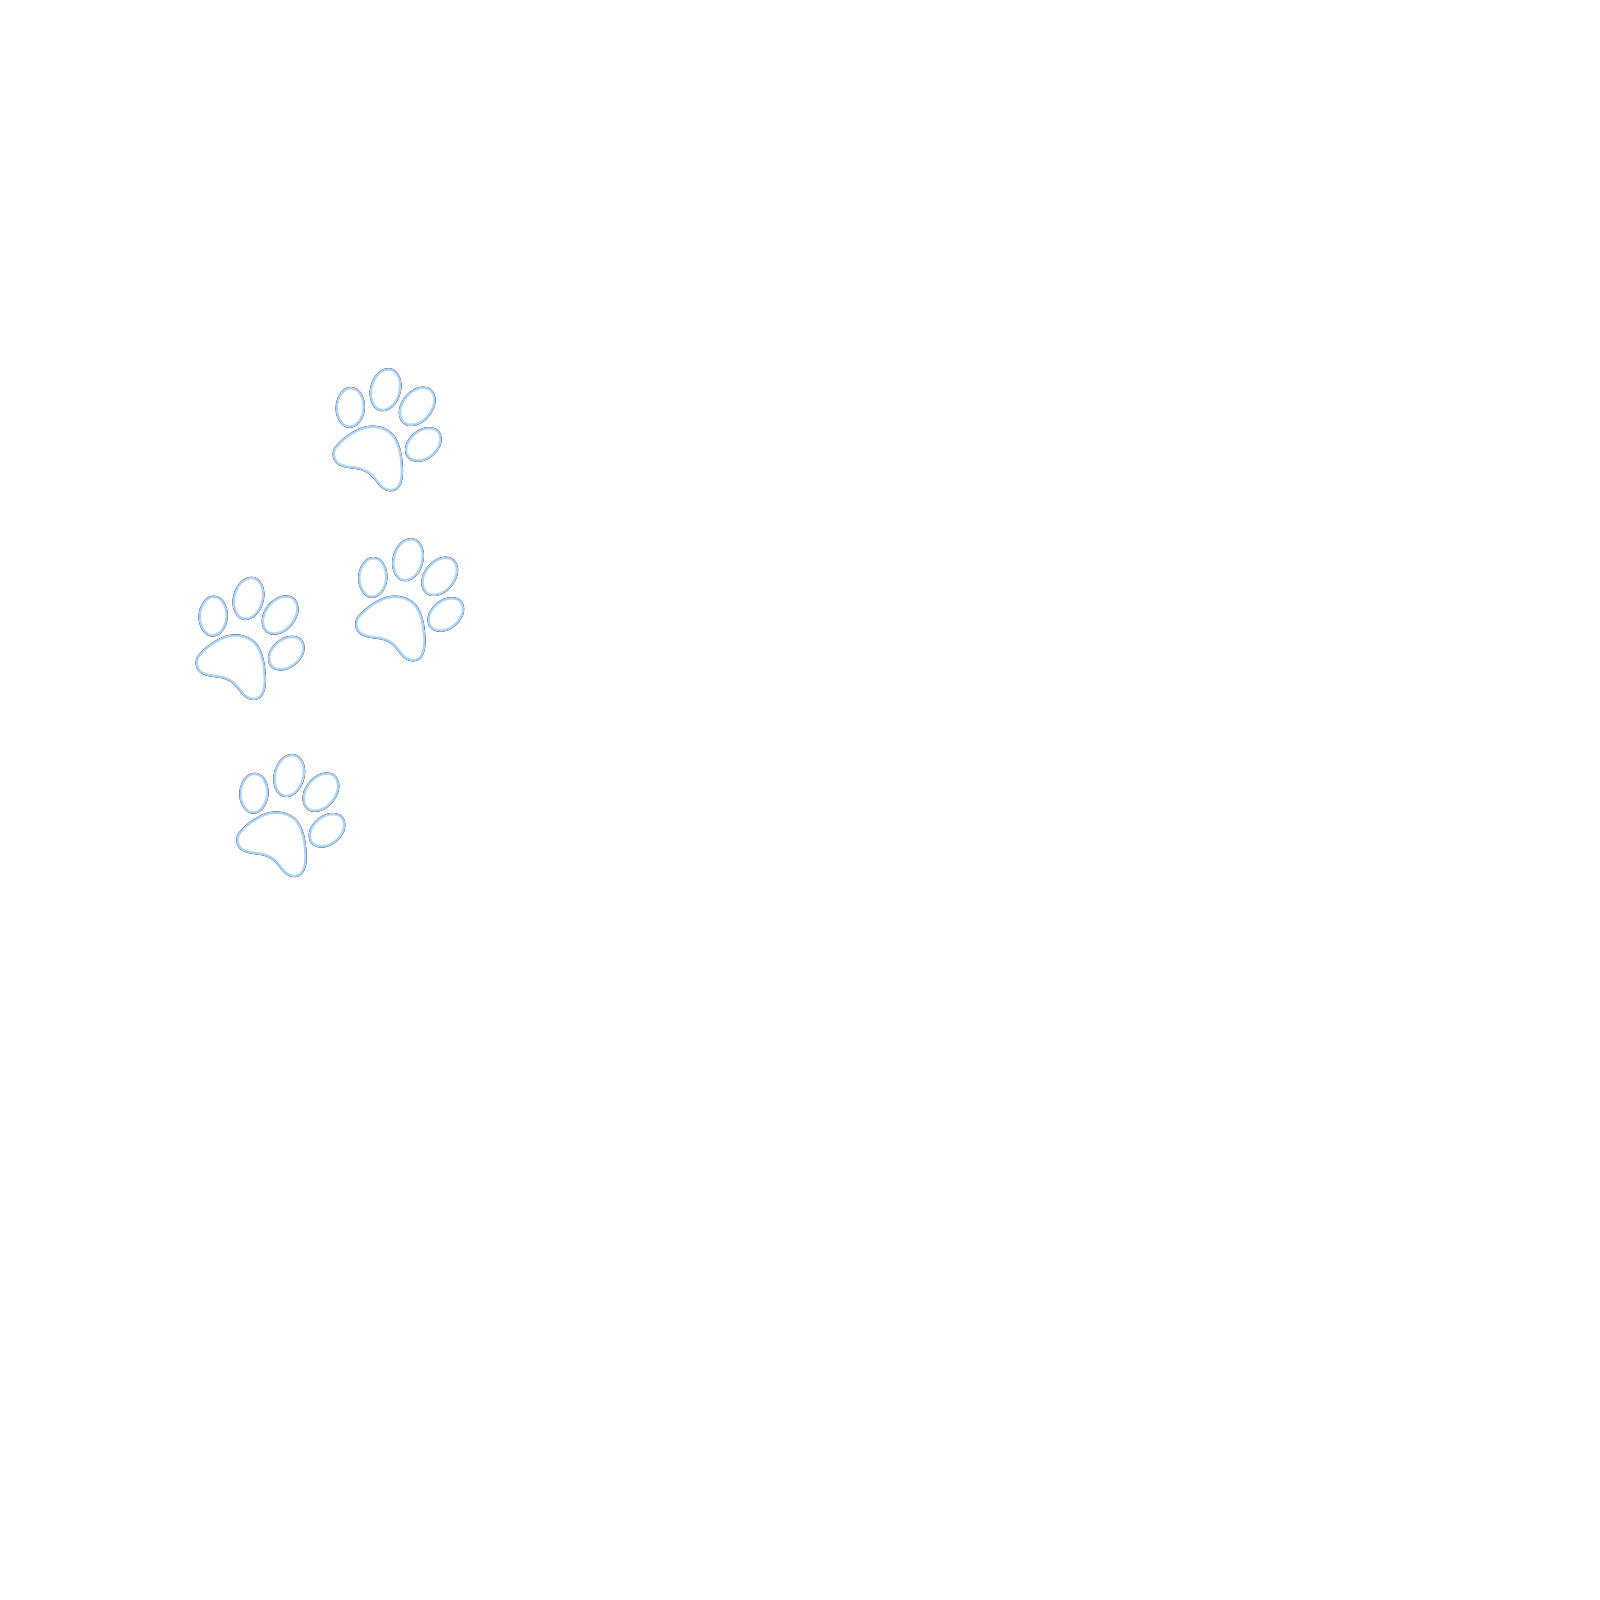 Four Paw Outline Clip art, Icon and SVG - SVG Clipart